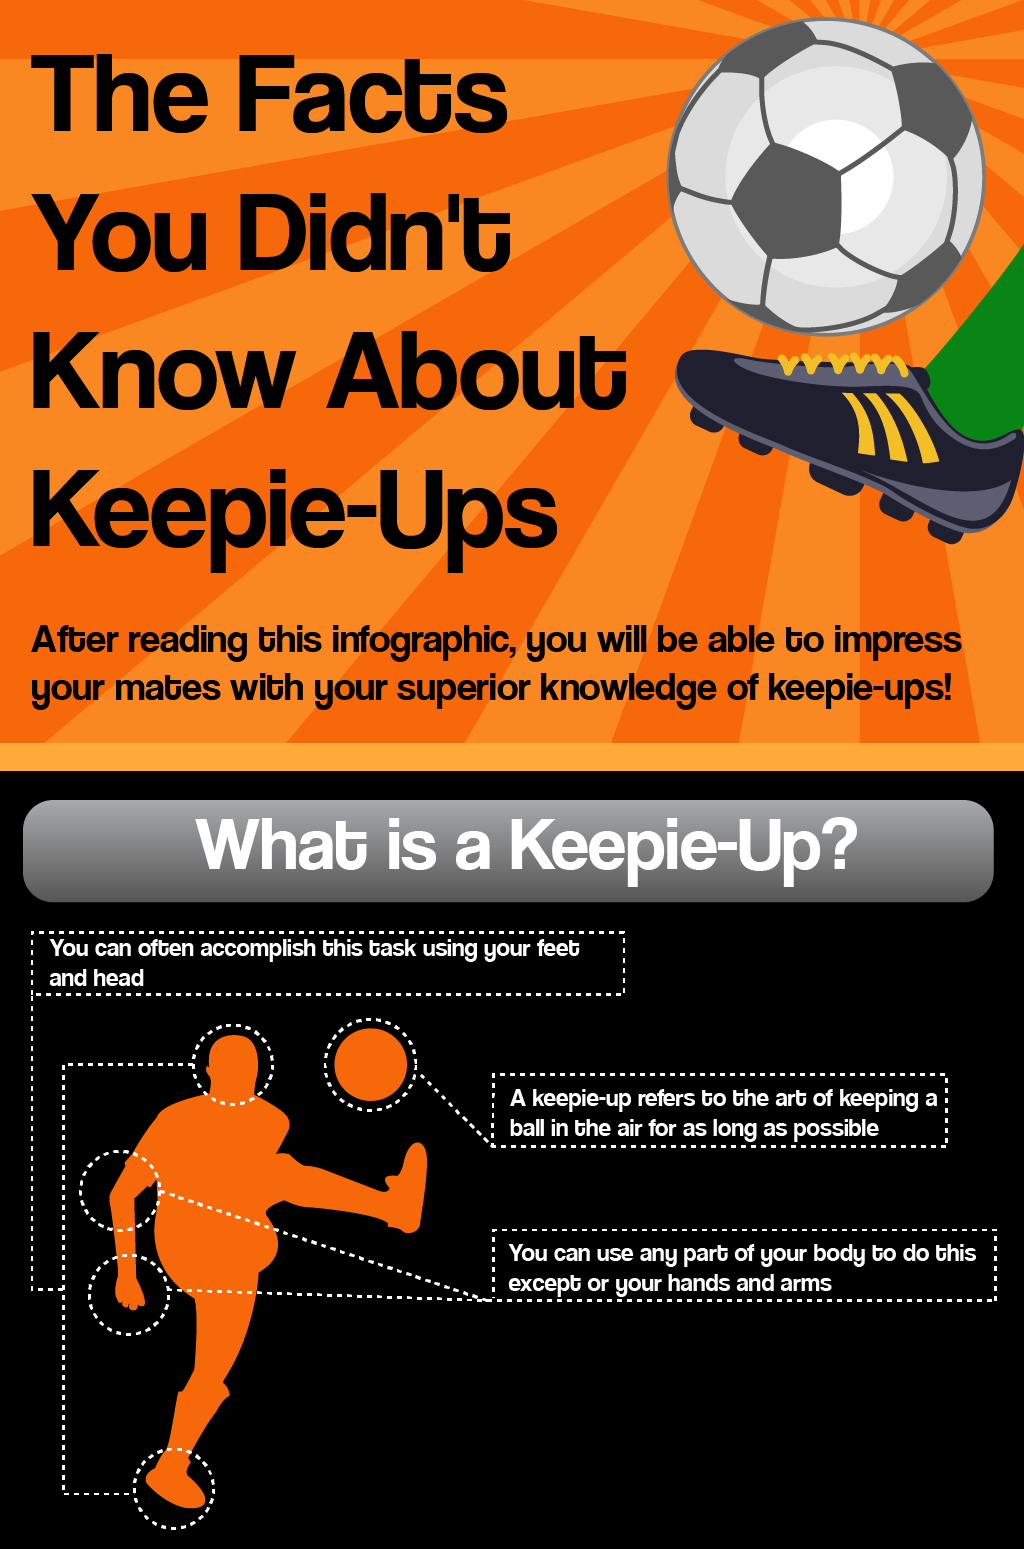 Facts-You-Didn't-Know-About-Keepy-Ups